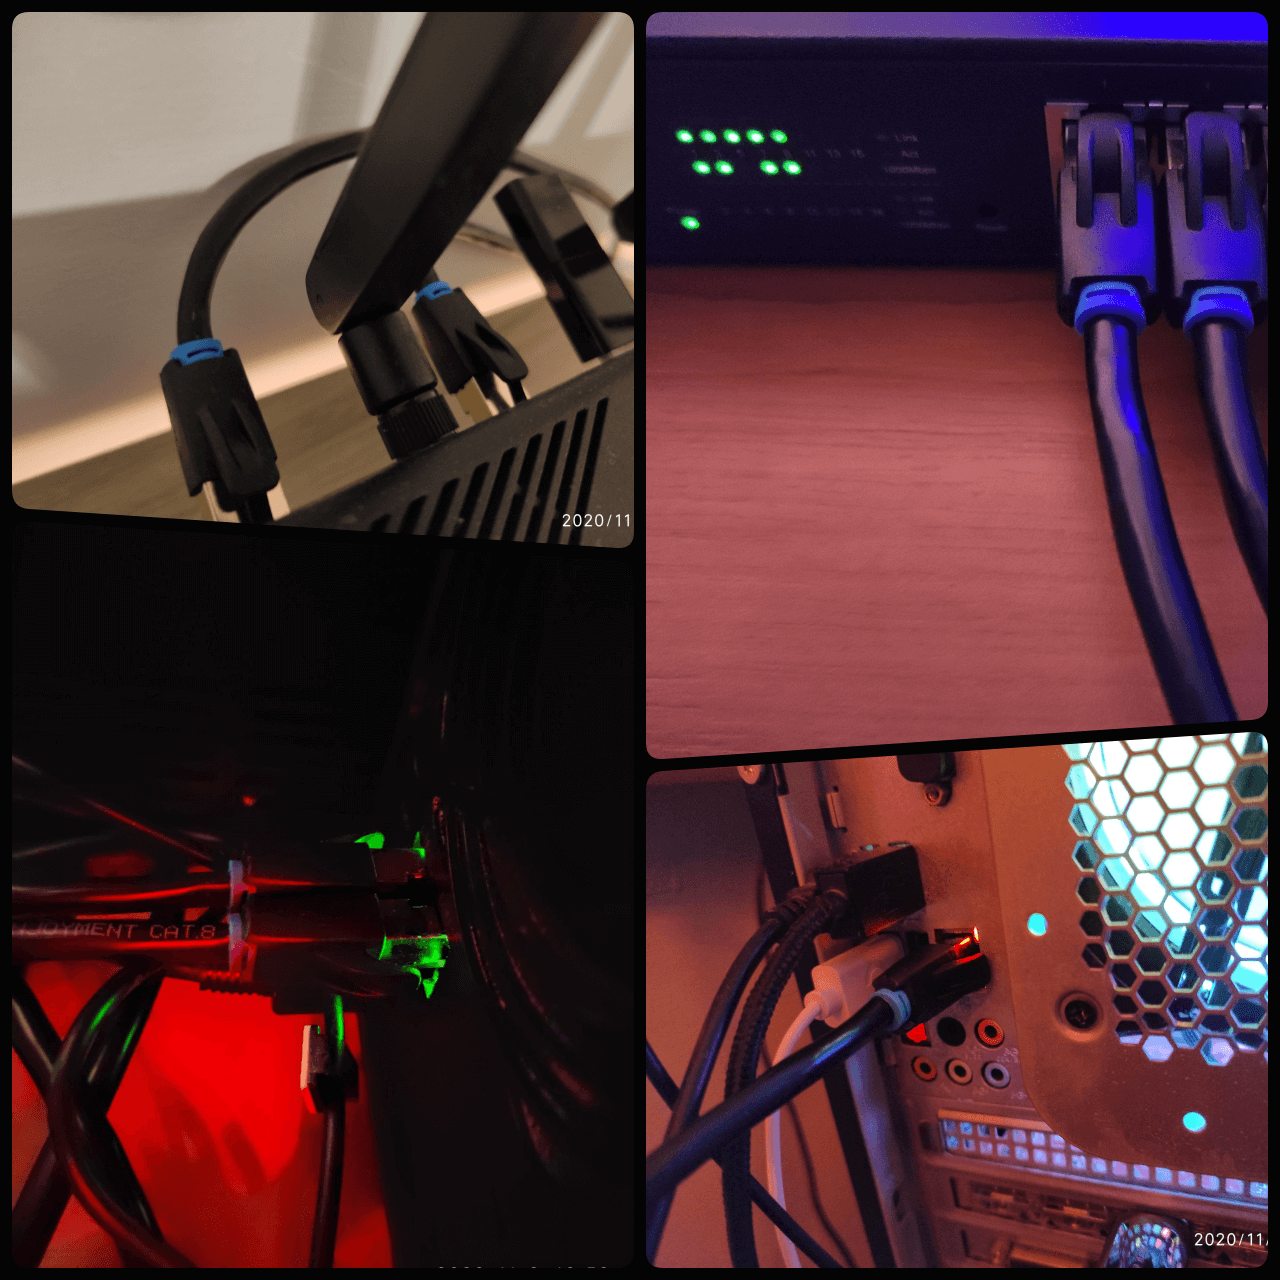 LAN to CAT 8 Cable Synology NAS